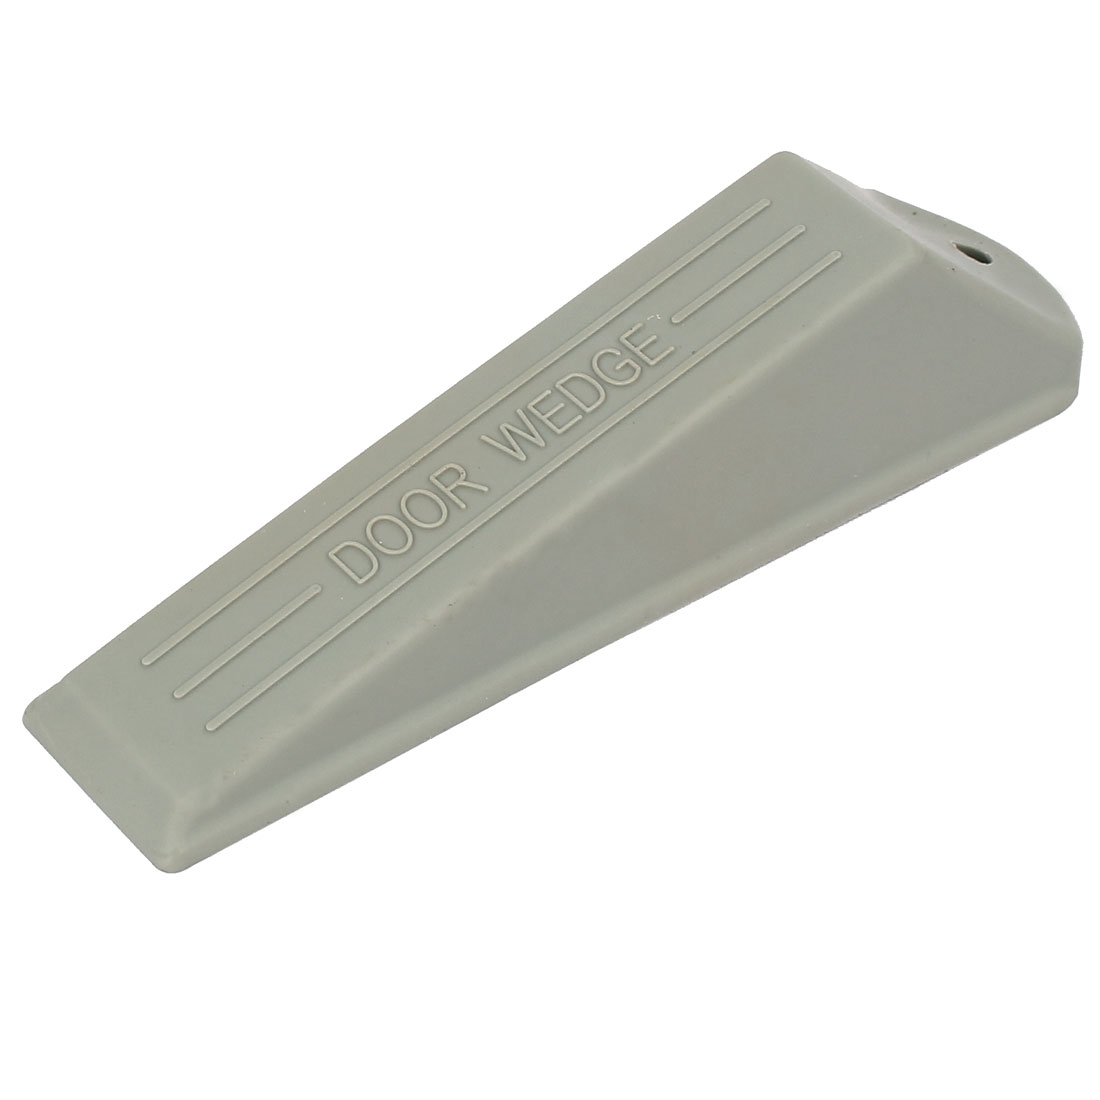 Home Office Rubber Safety Wedge Jam Door Stopper Doorstop Gray 134mm Length